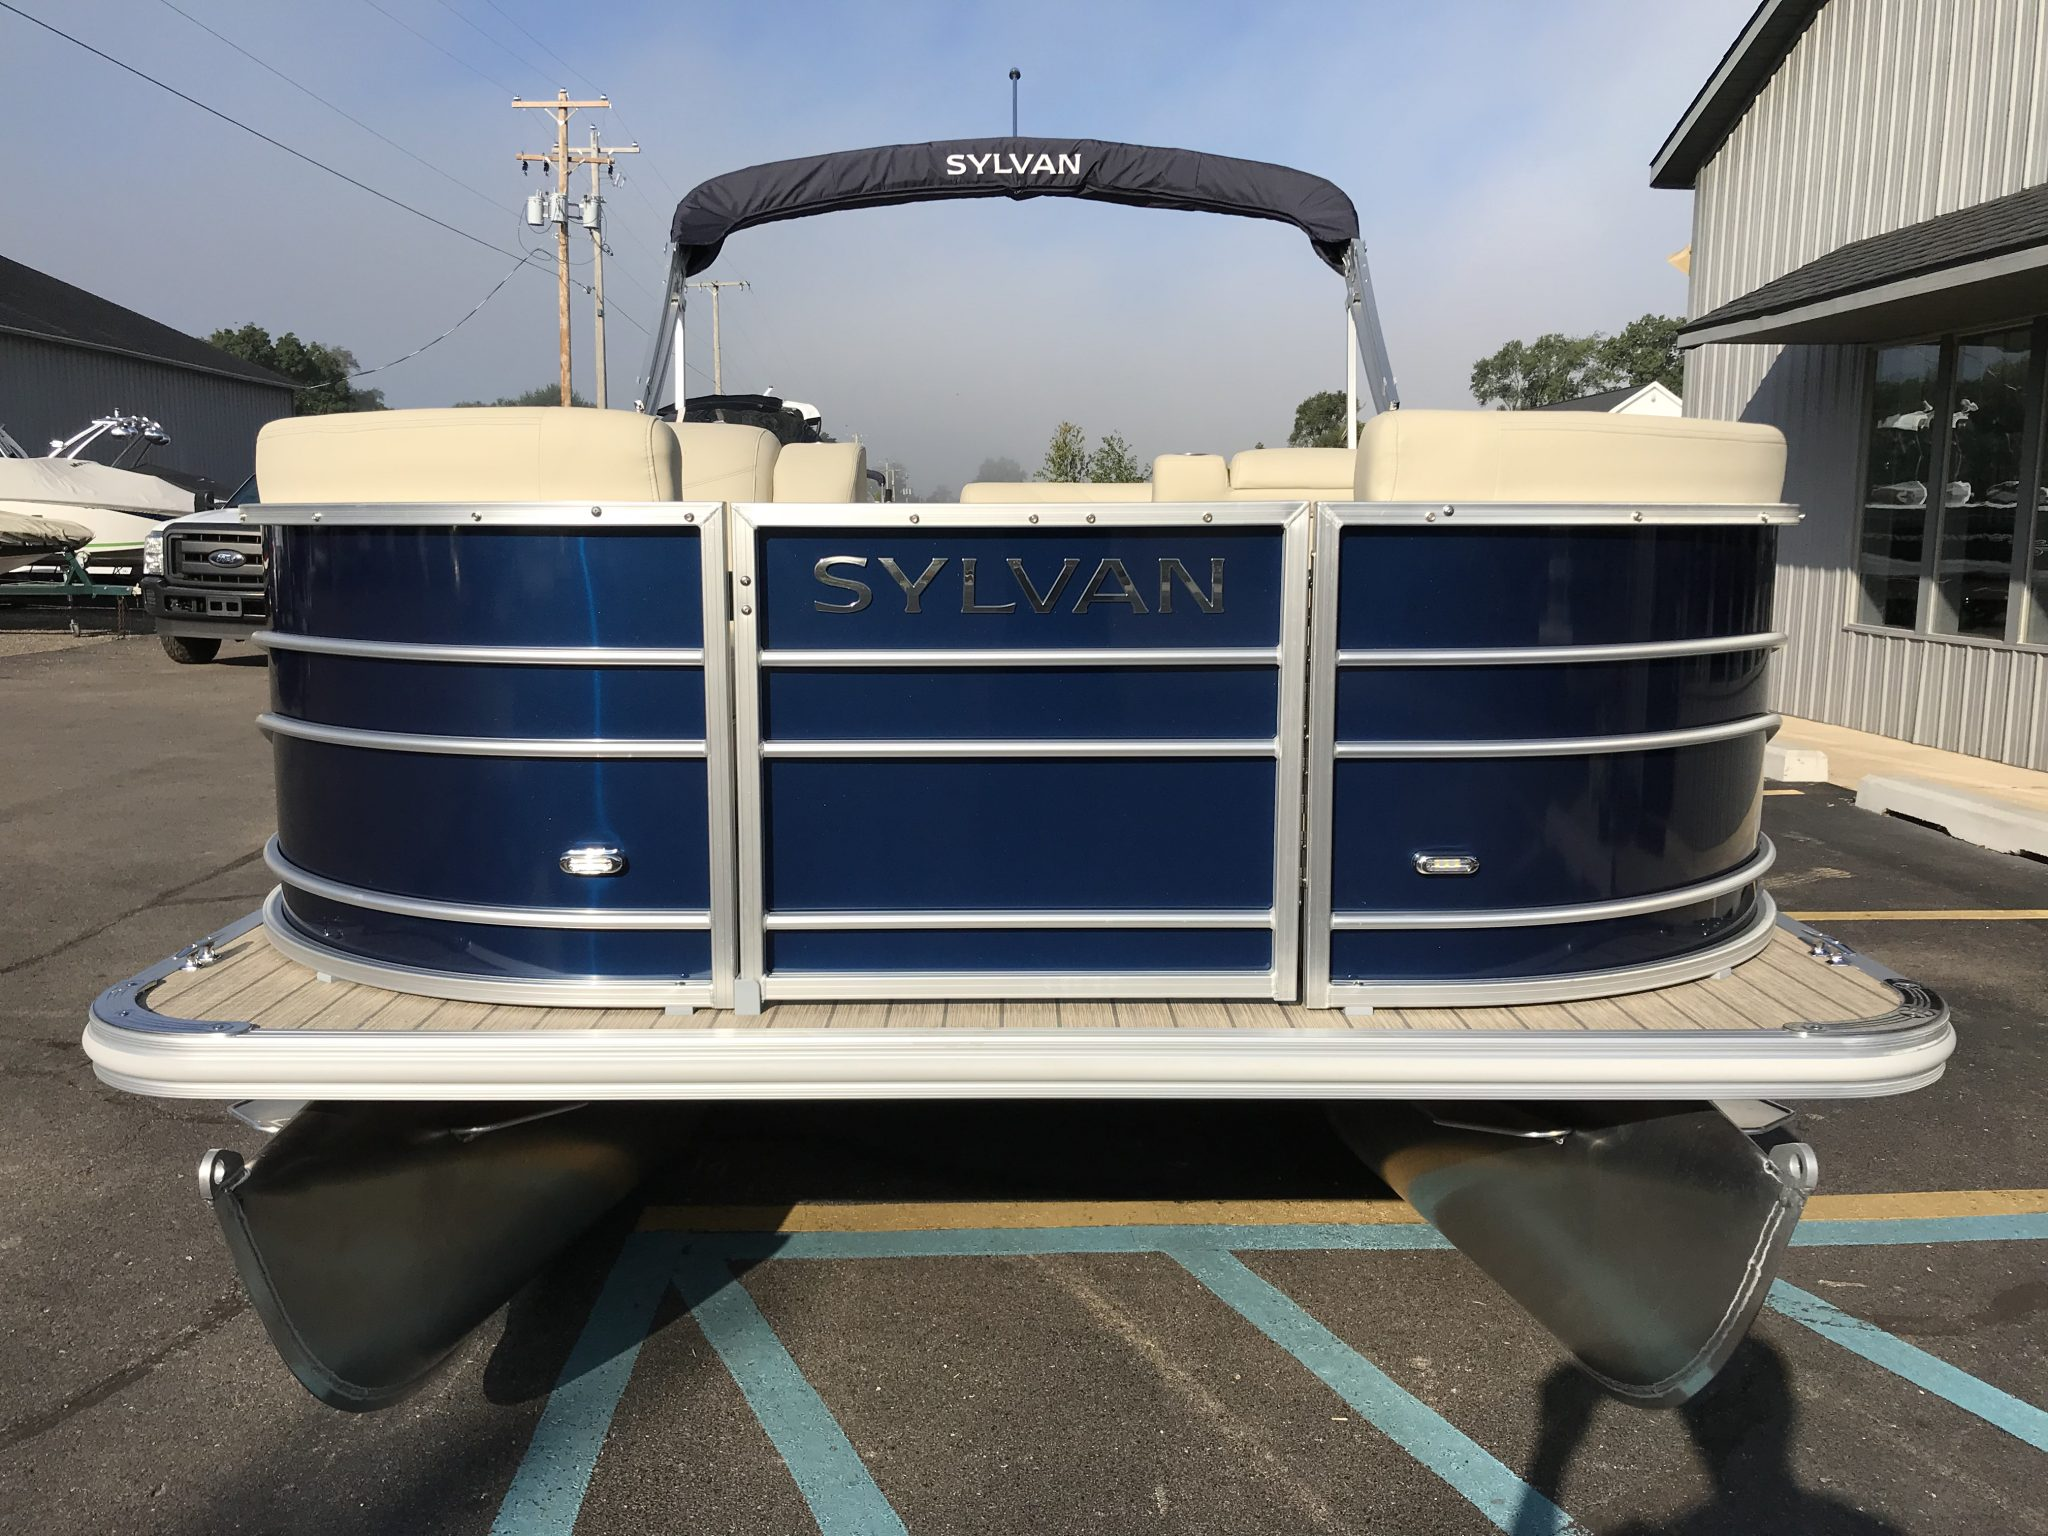 Sylvan 8520 Cruise-n-Fish Blue 2